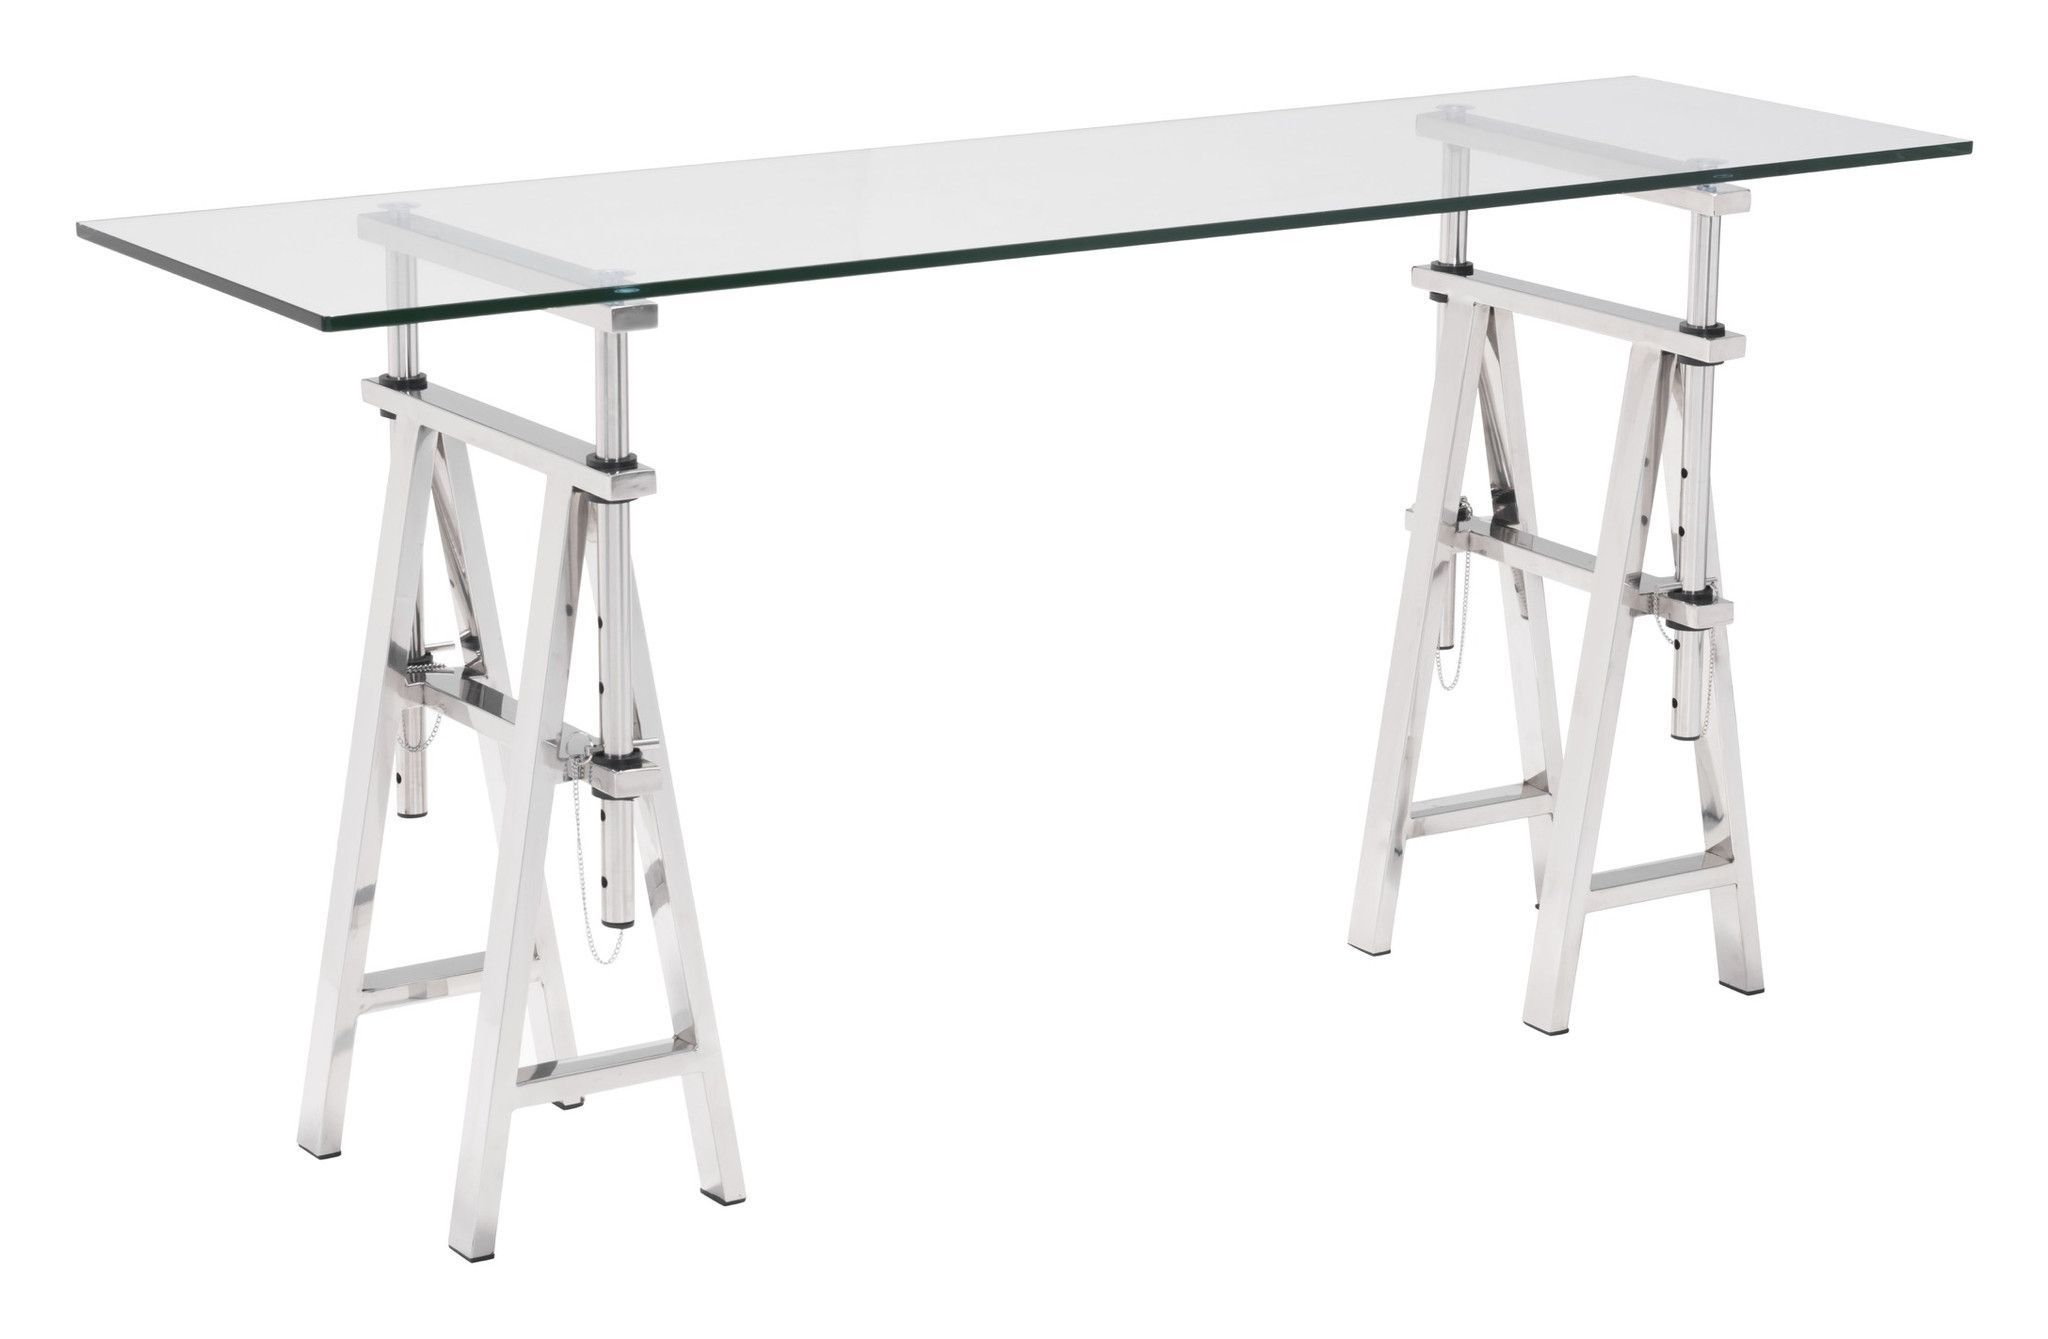 Lado Console Table with Stainless Steel Trestle Legs & Tempered